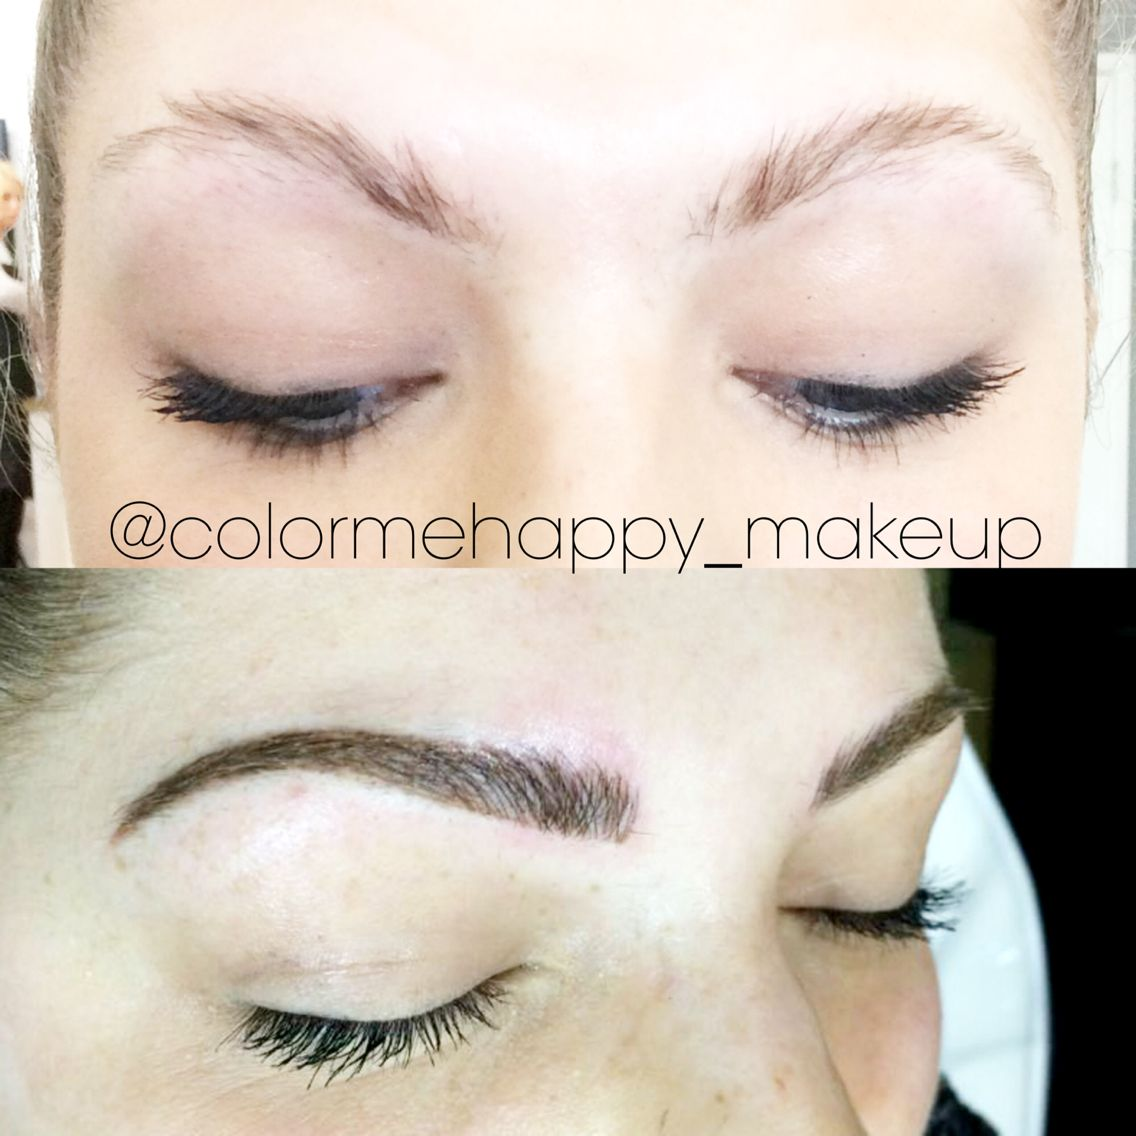 Hair Stroke Feather Touch Tattooed Eyebrows 499 Cosmetic Tattoo